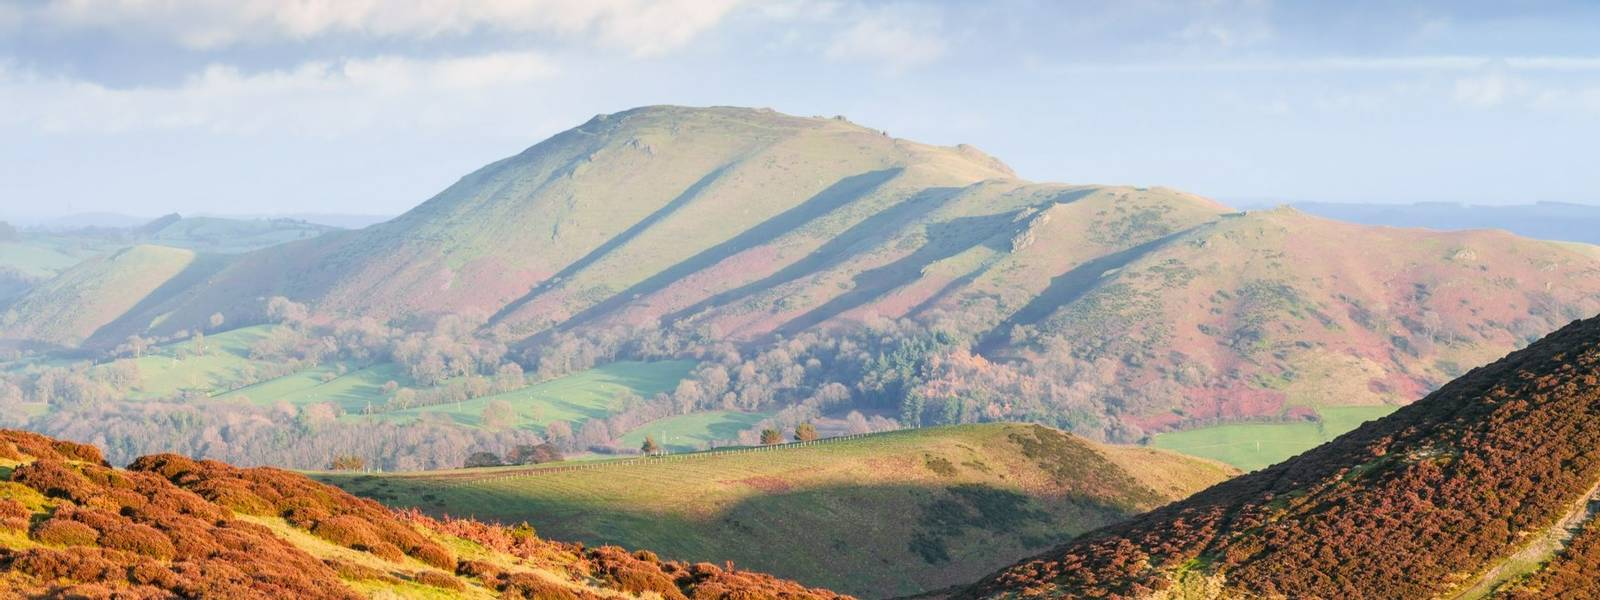 Autumnal Heather Hills Flooded in Warm Sunset Light, Carding Mill Valley in Church Stretton, Shropshire